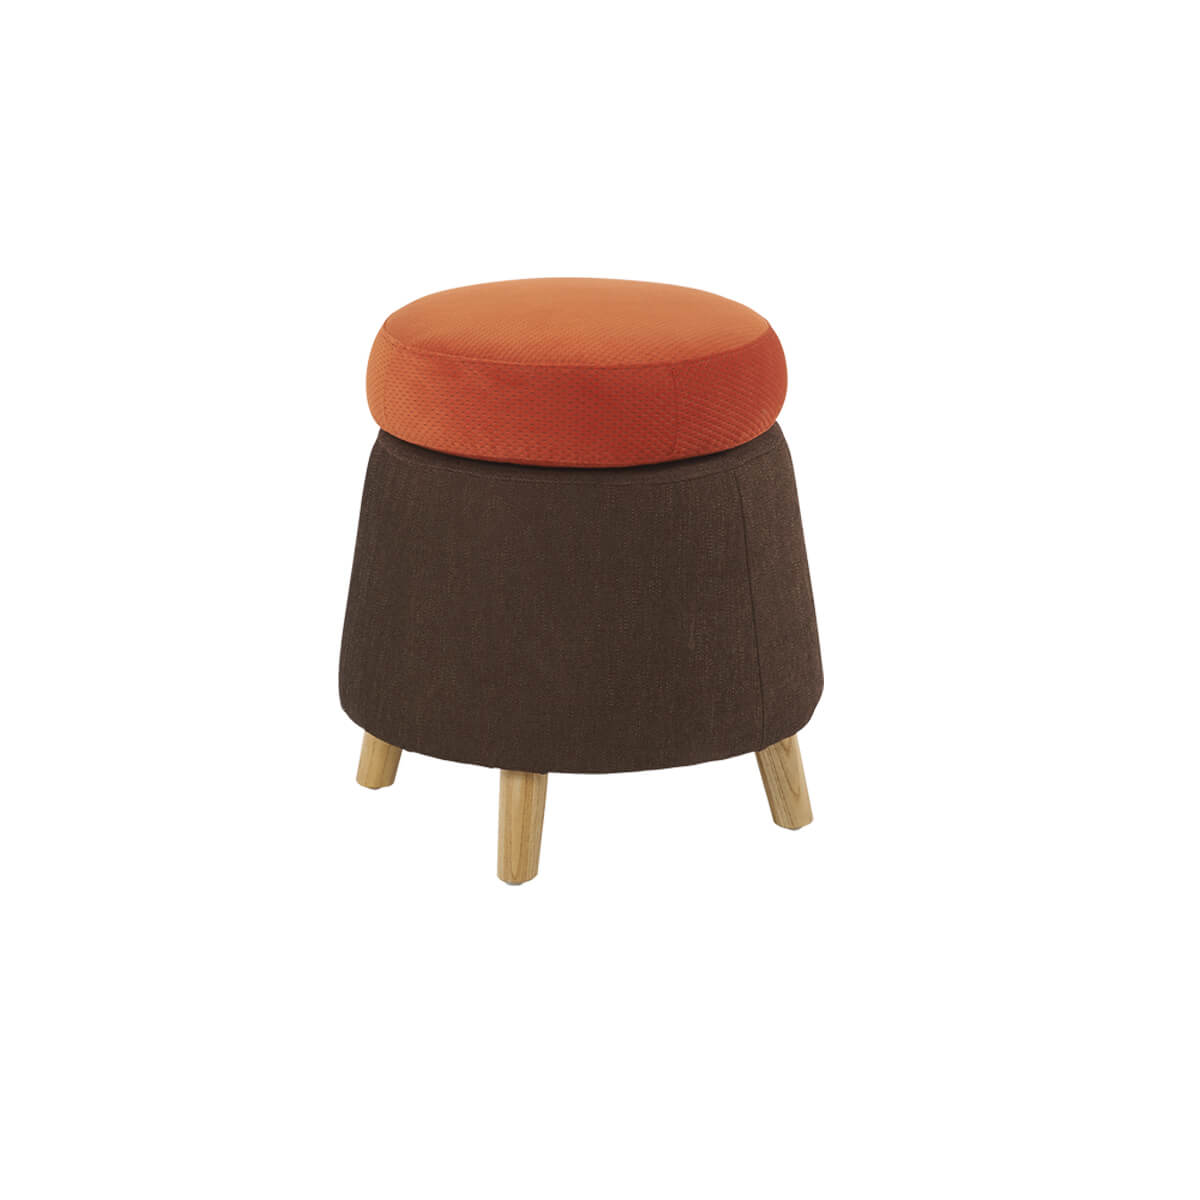 pouf wheel hanjel brun orange zeeloft